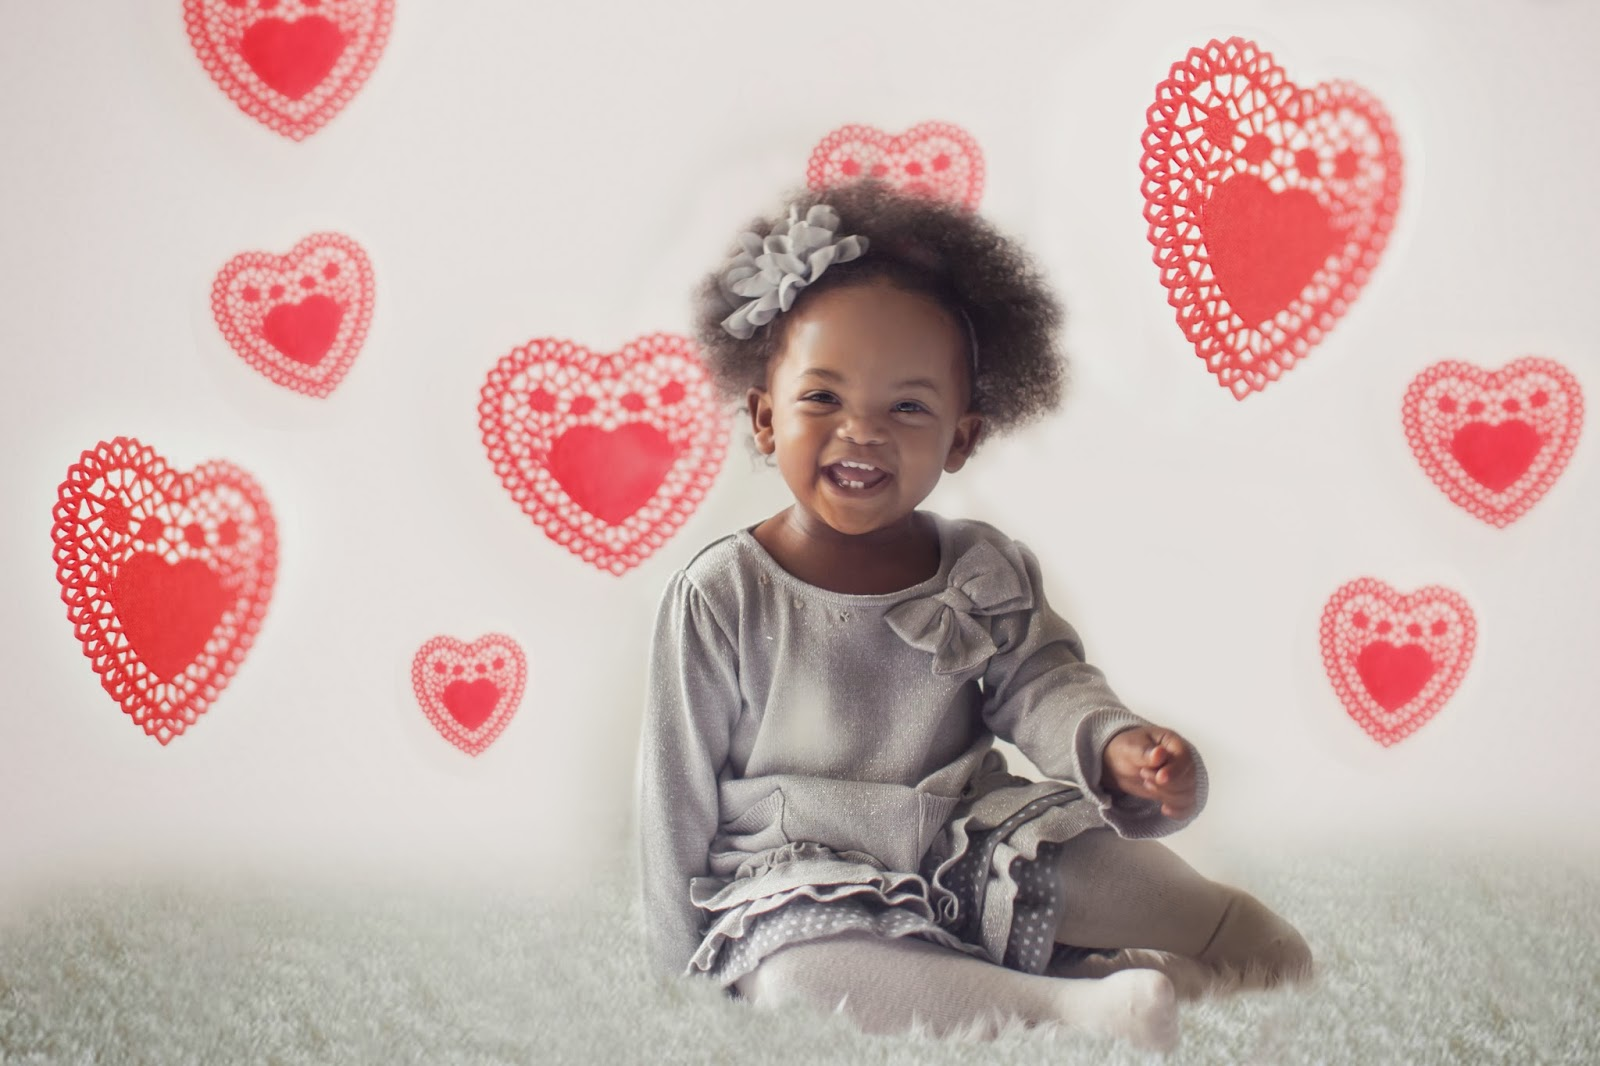 marisa taylor photography, delaware baby photographer, delaware child photographer, valentines day